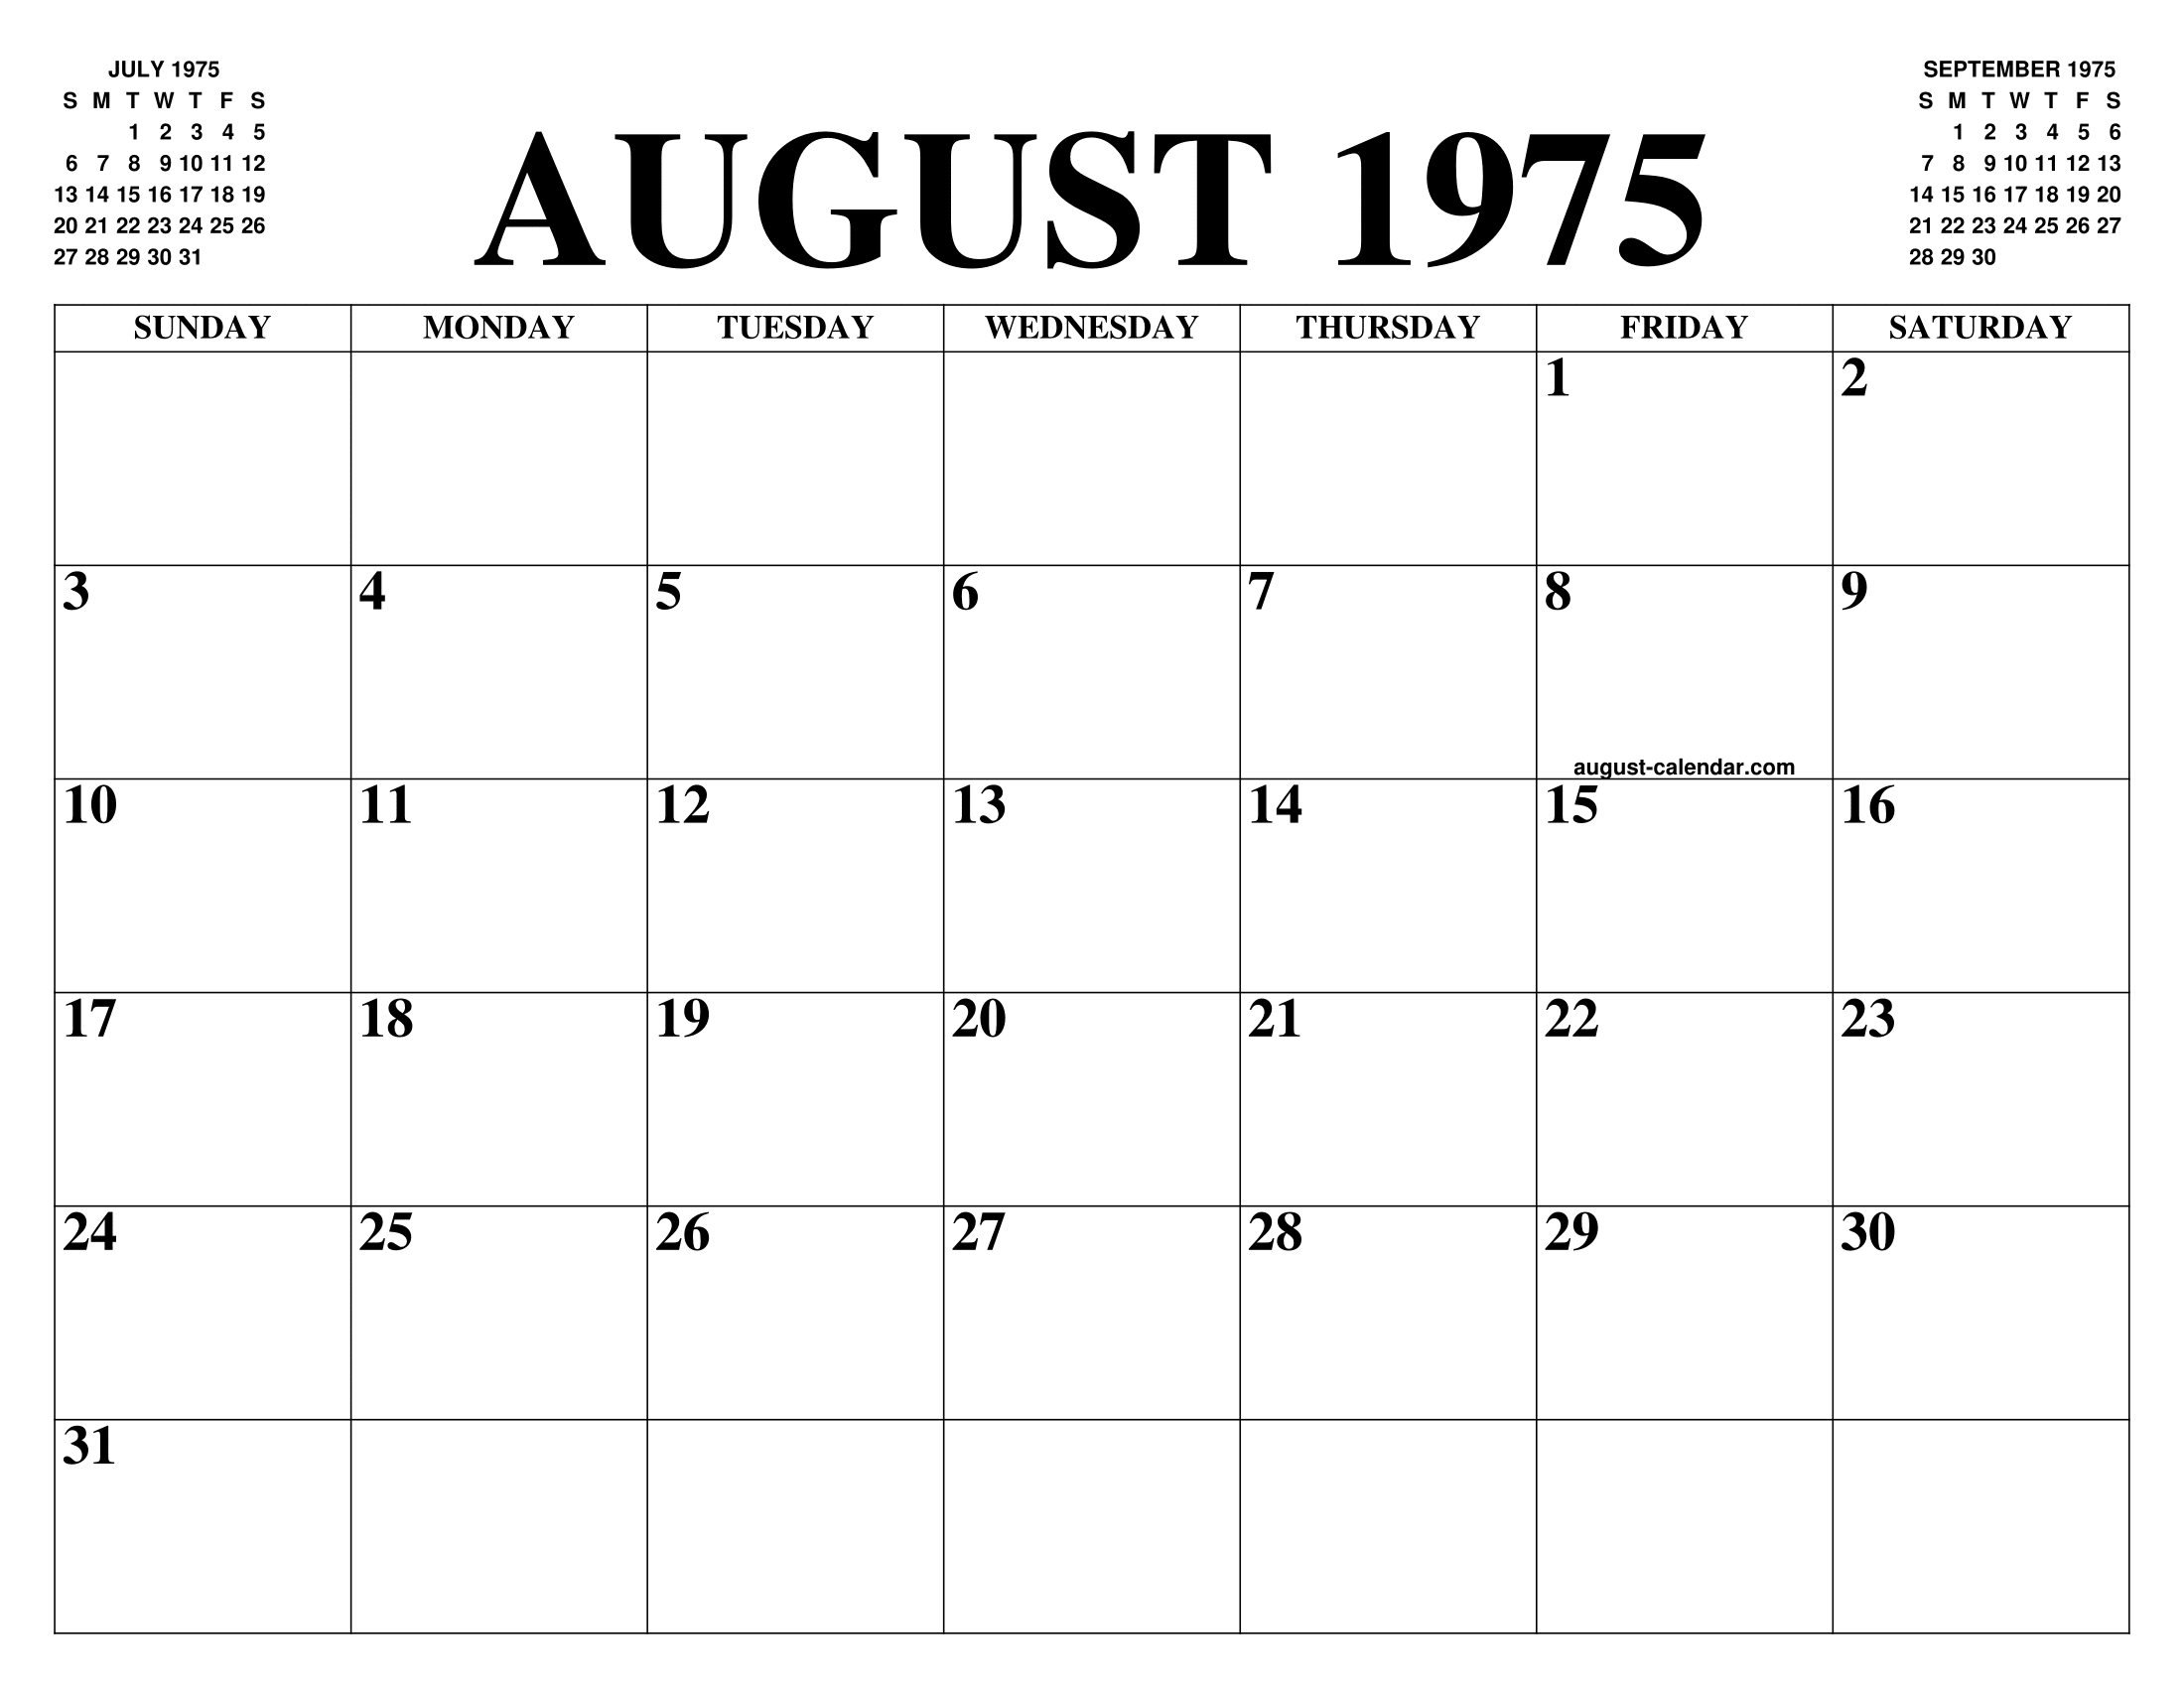 Calendario 1975.August 1975 Calendar Of The Month Free Printable August